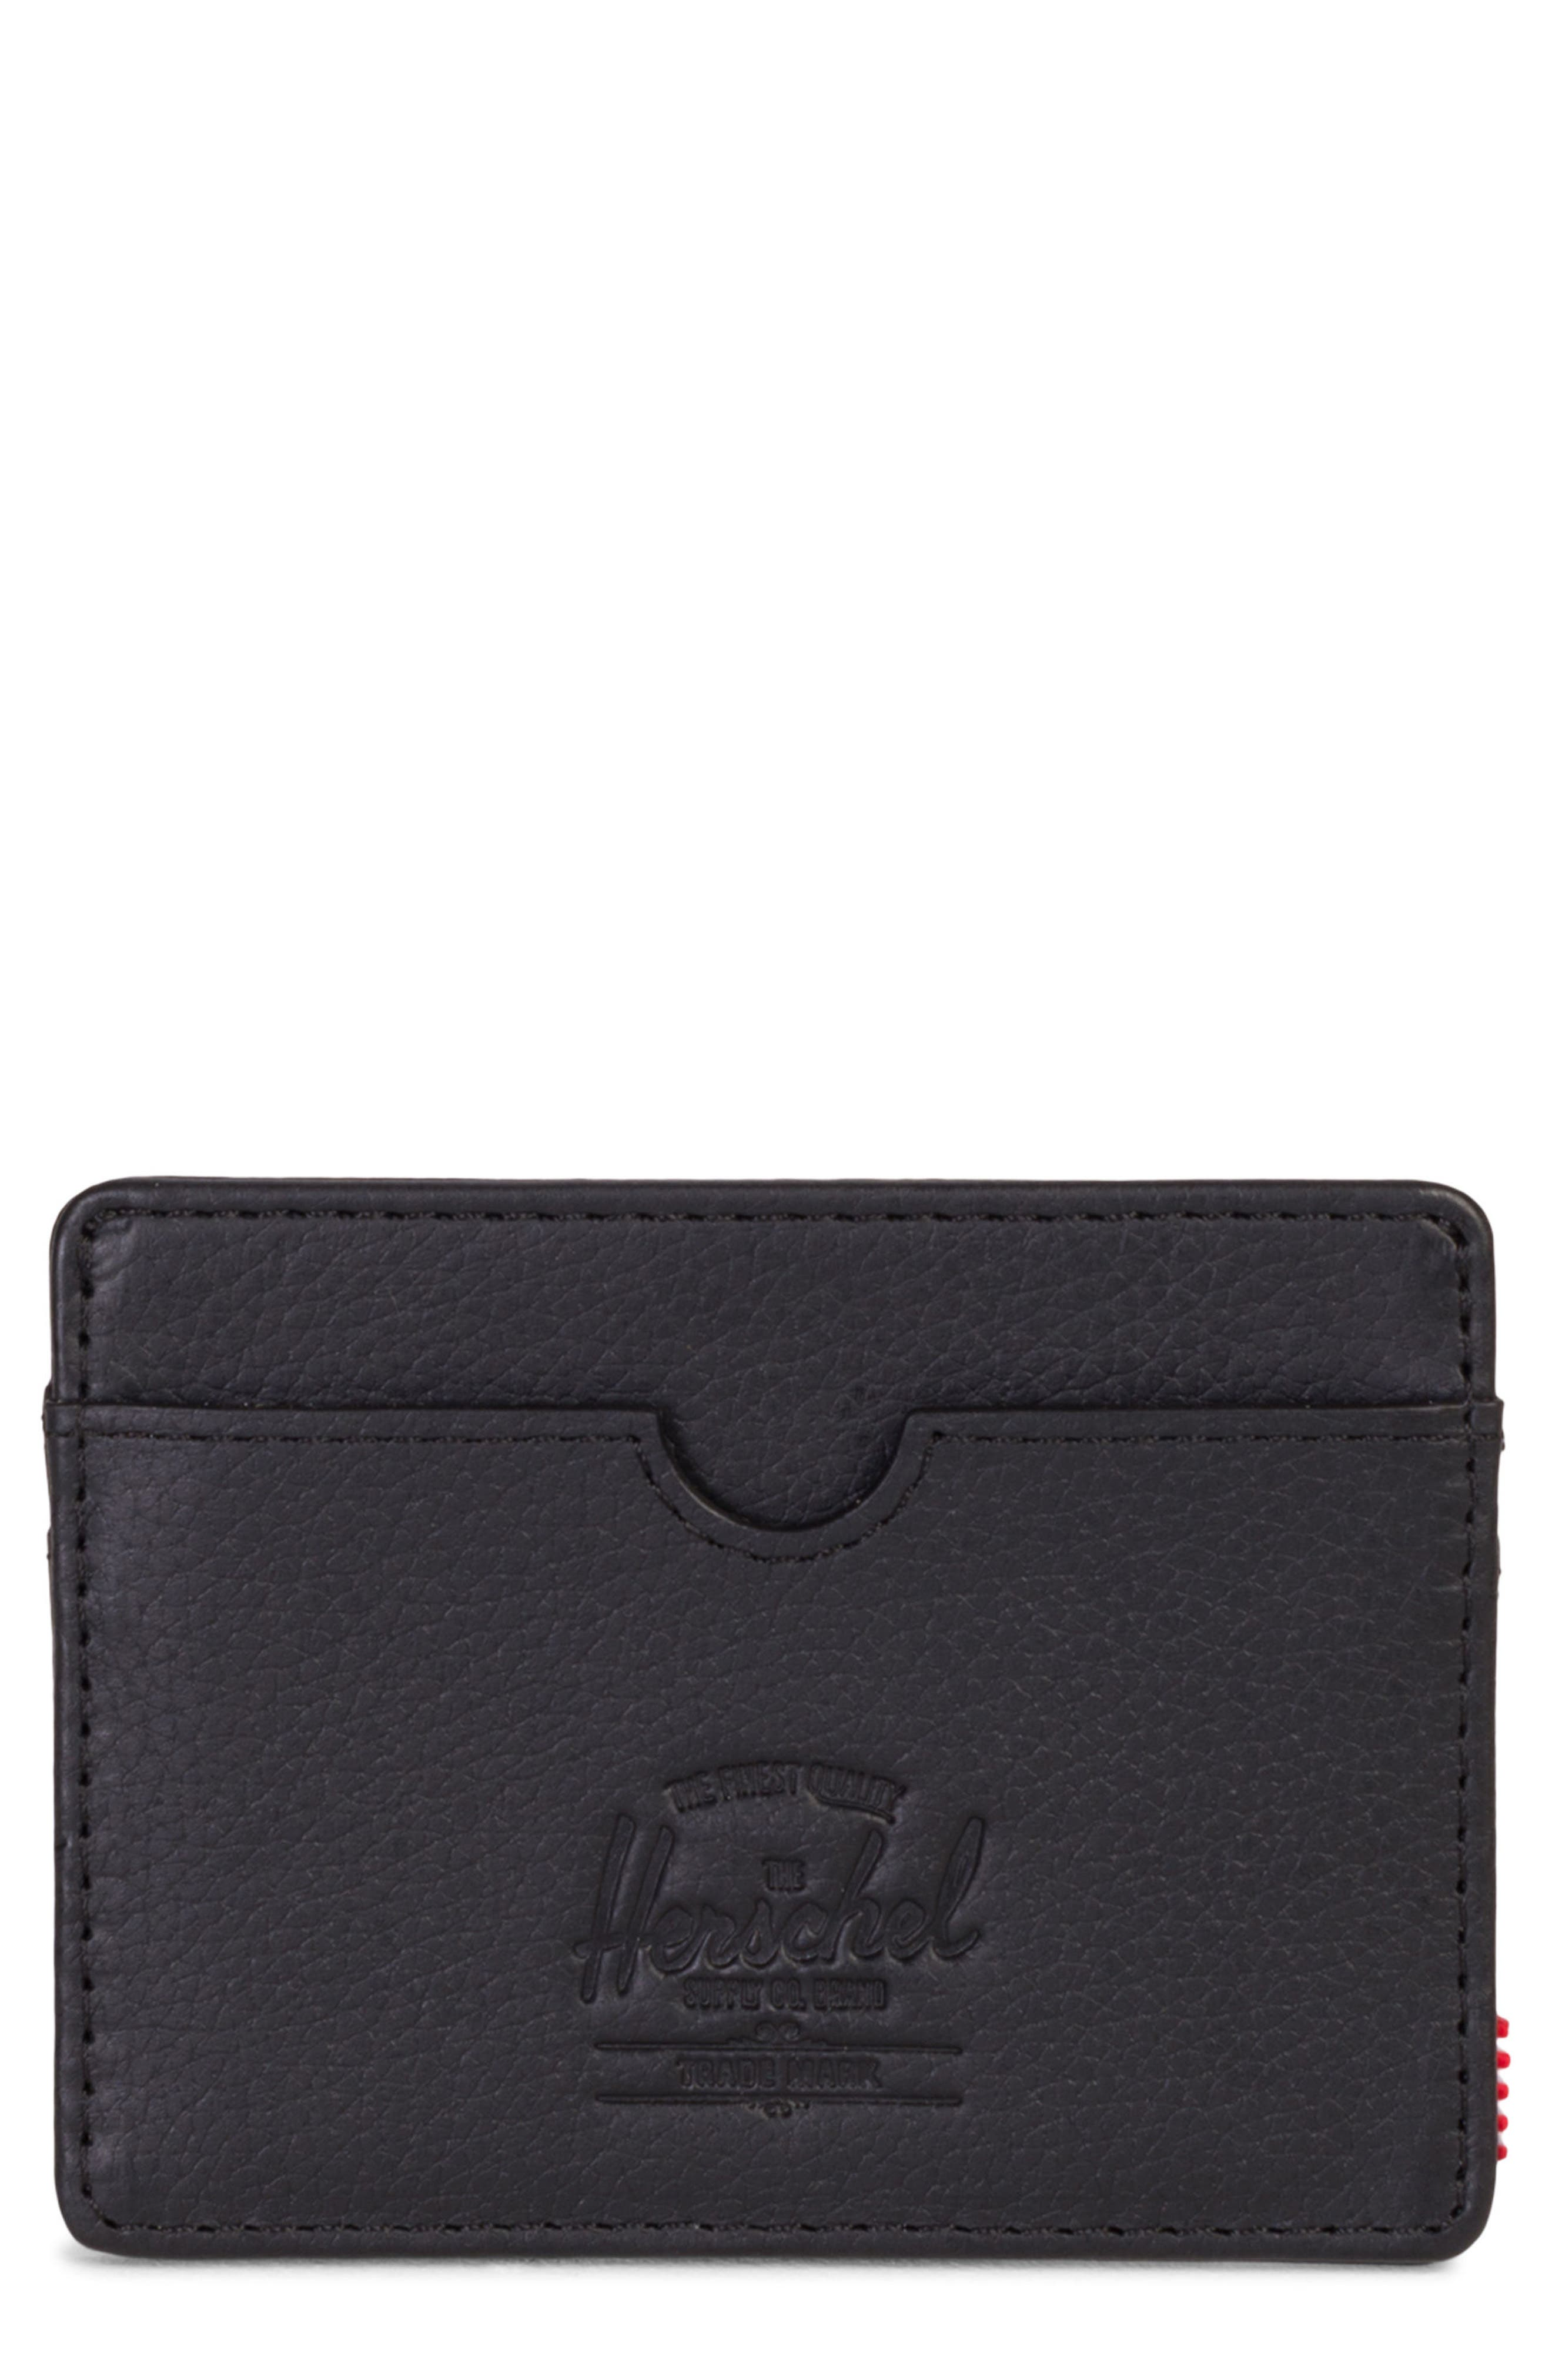 HERSCHEL SUPPLY CO., Charlie Leather RFID Card Case, Main thumbnail 1, color, BLACK PEBBLED LEATHER